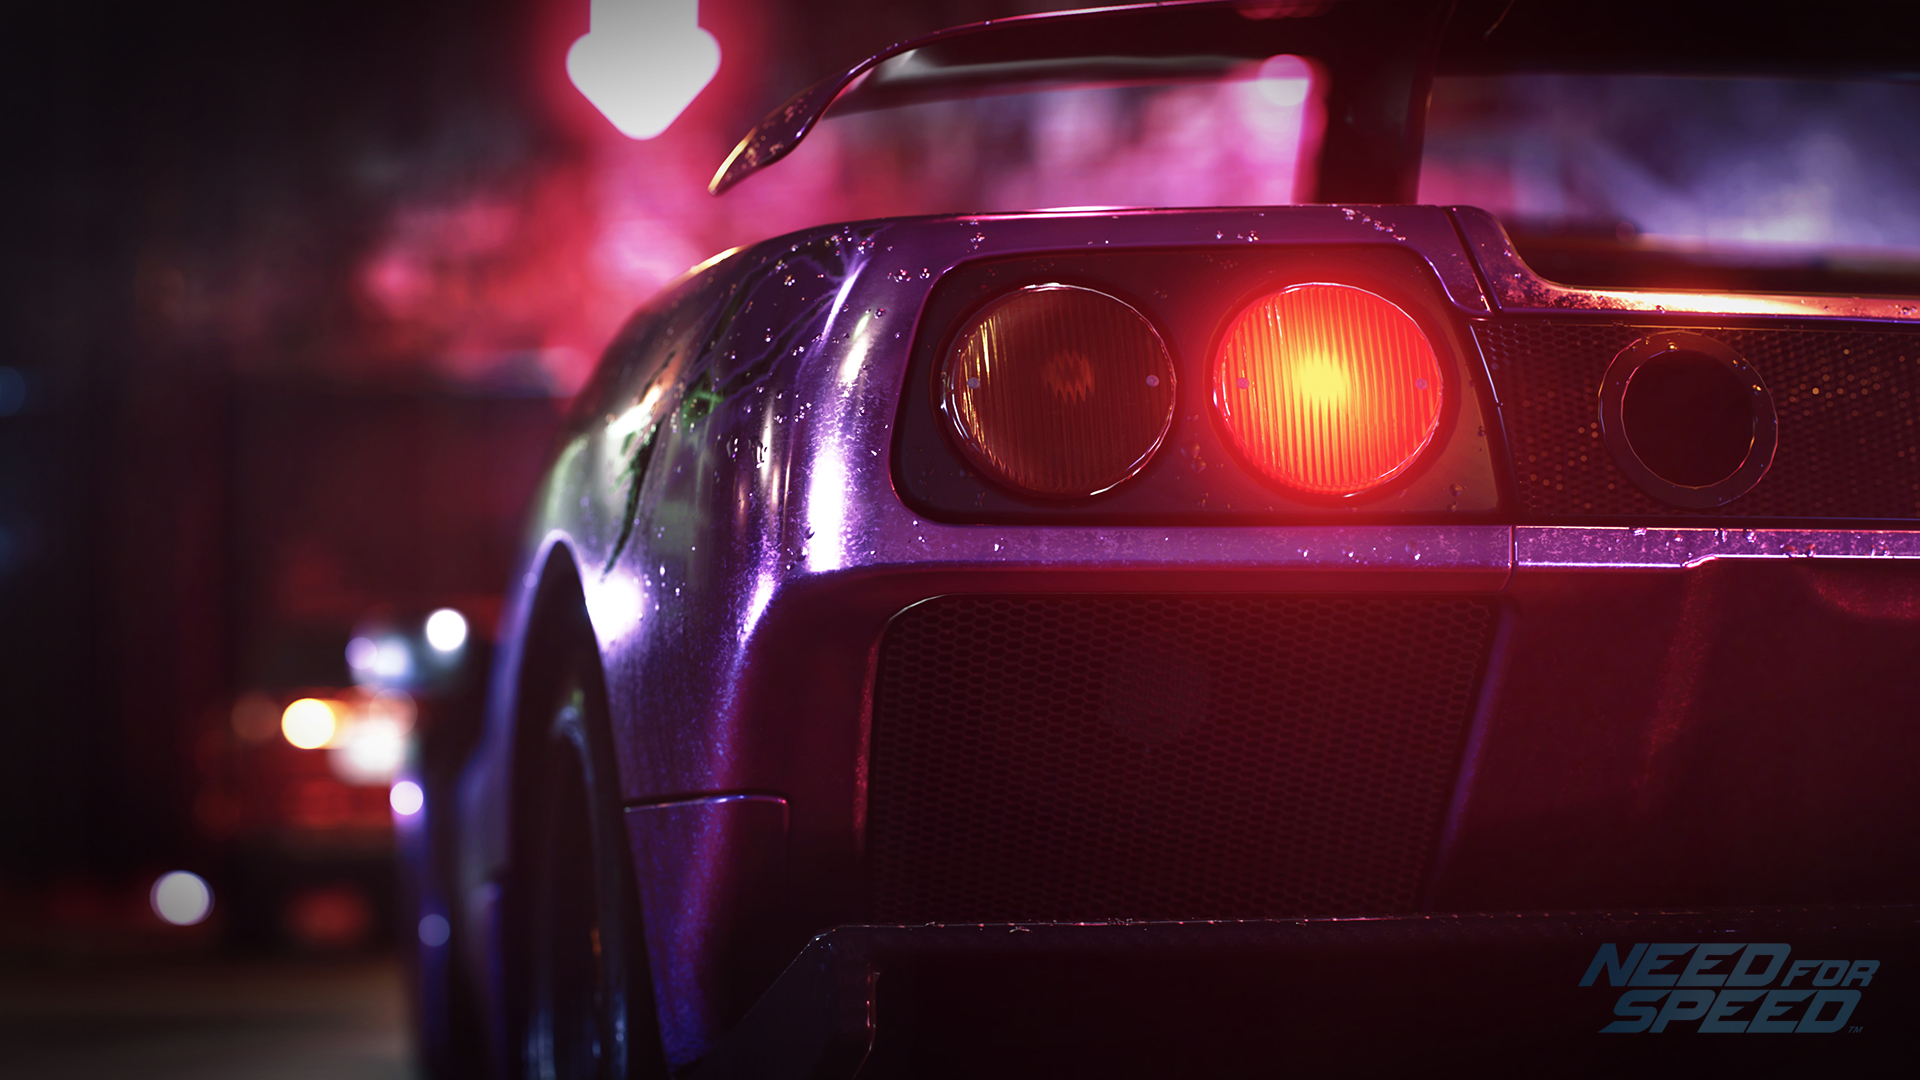 Need For Speed New 1080p Screenshots Show Great Detail